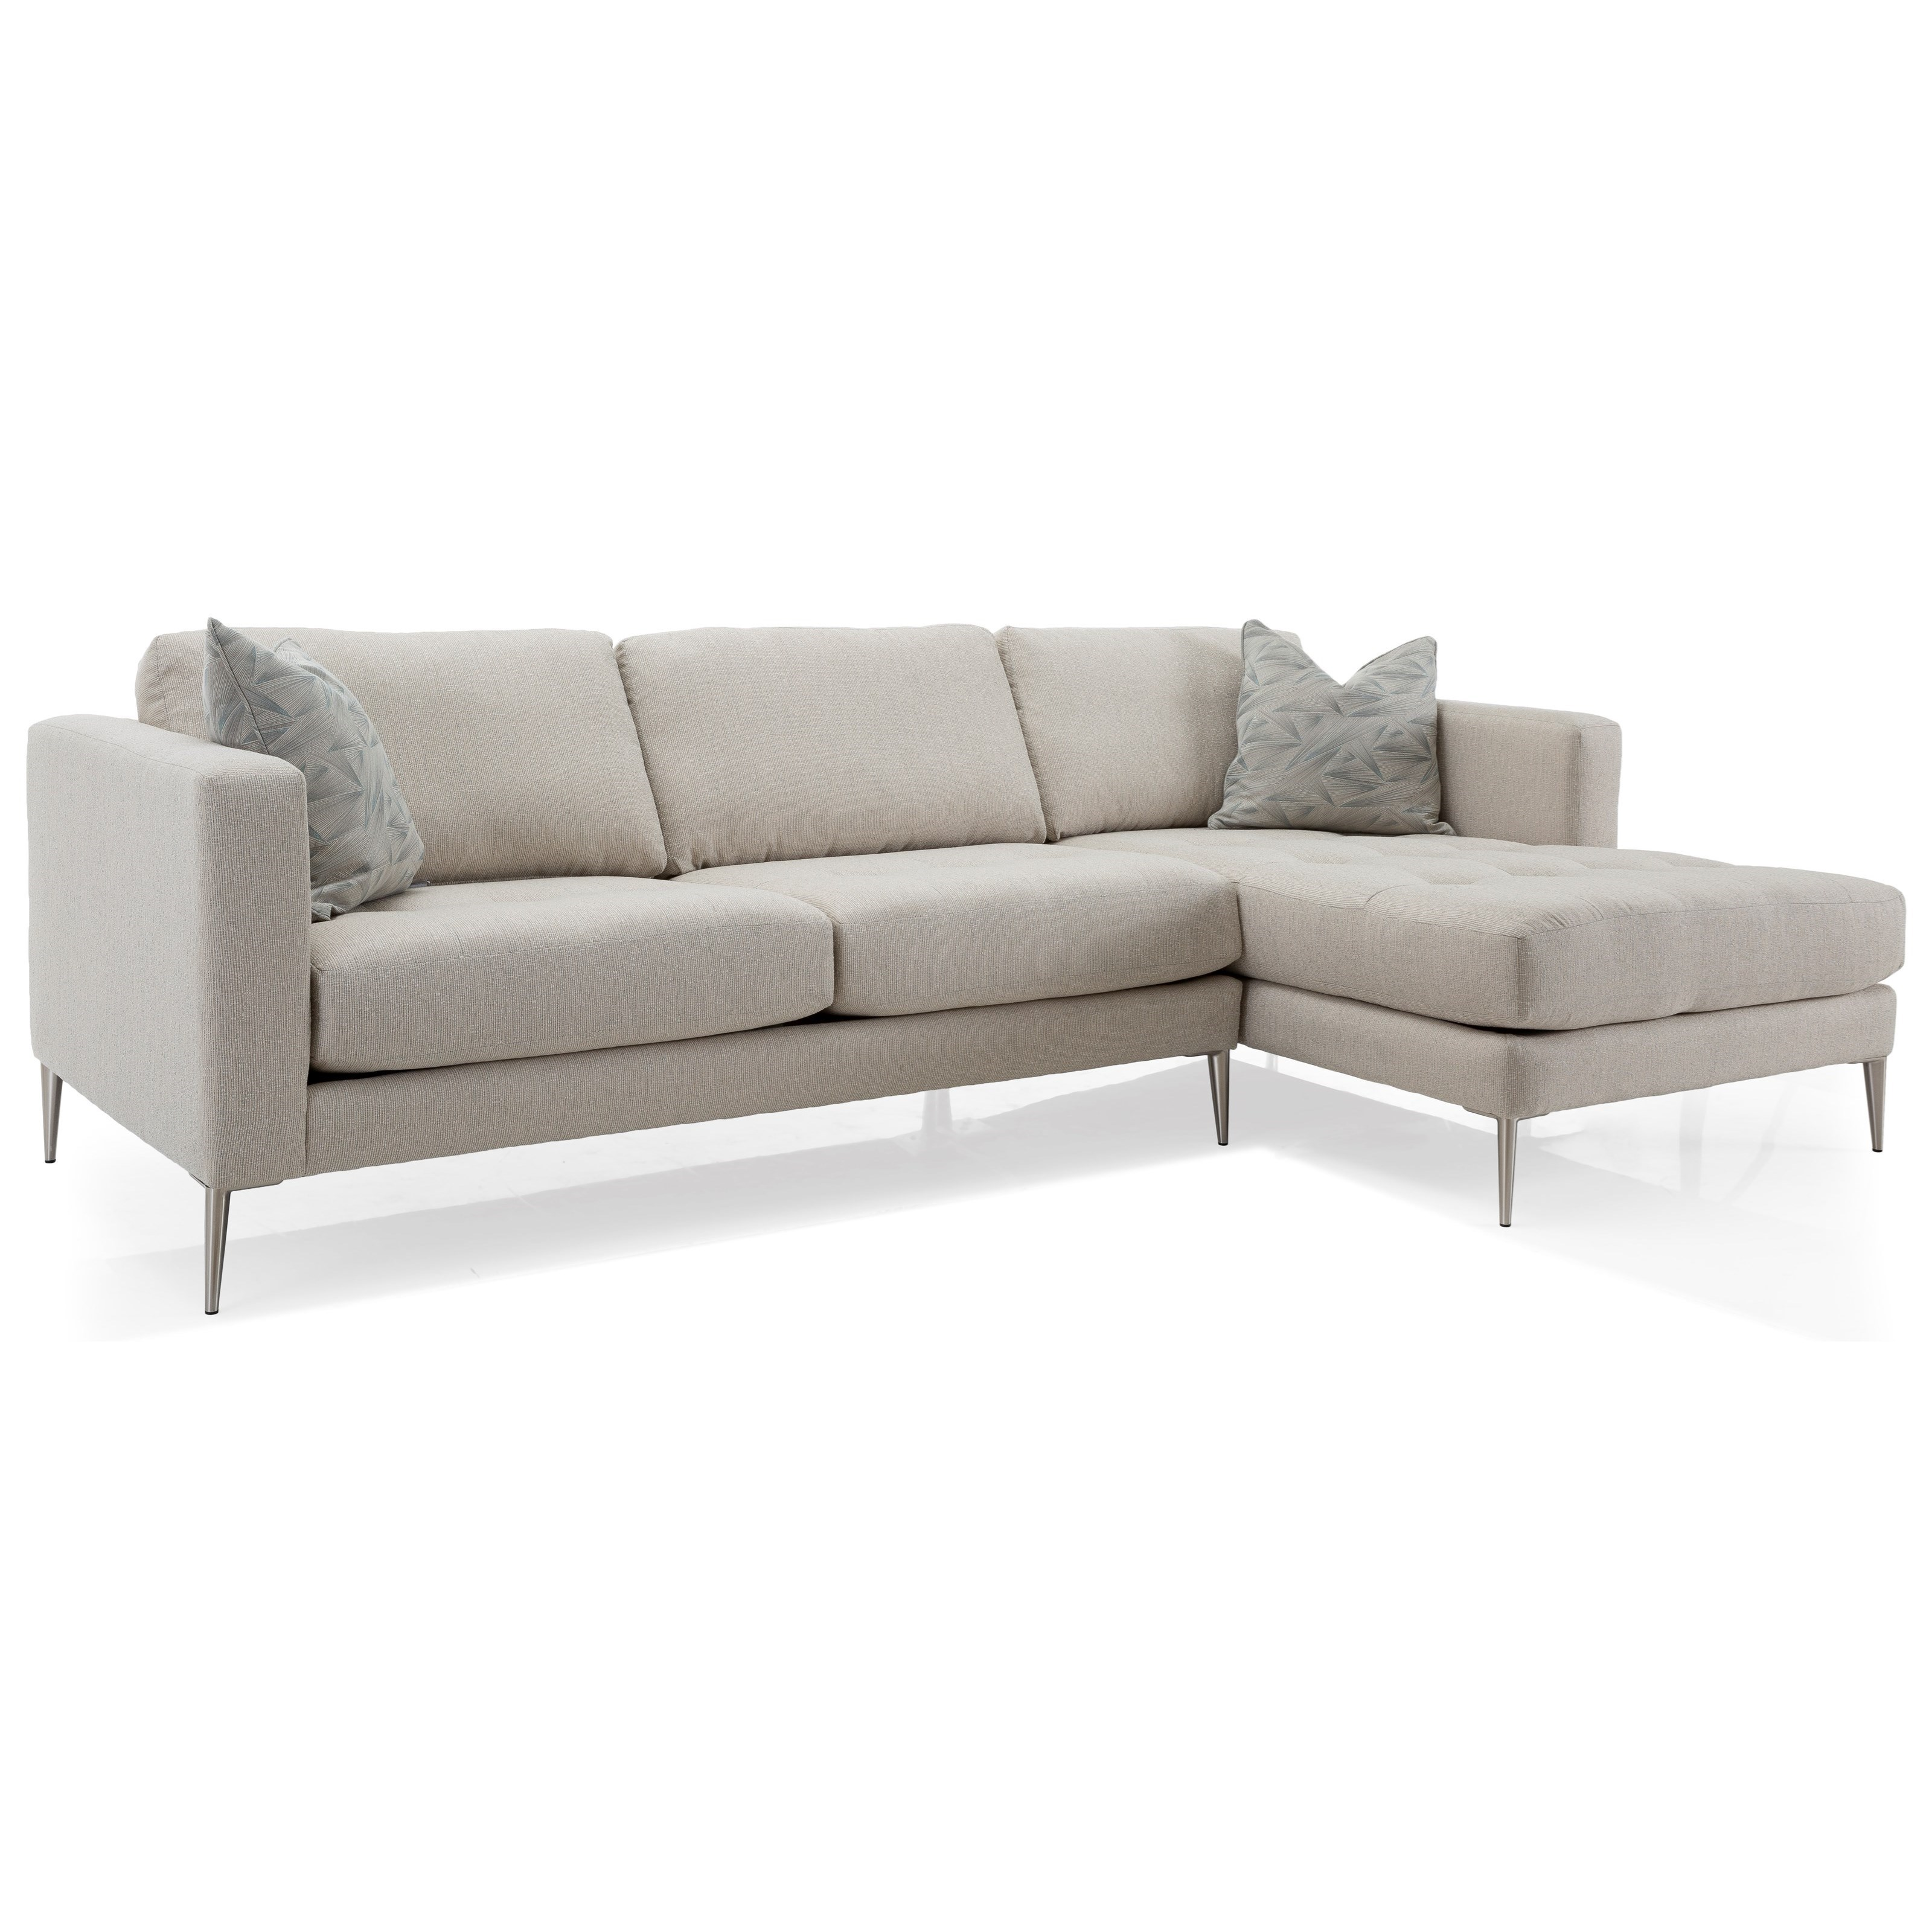 3795 Chaise Sofa by Decor-Rest at Stoney Creek Furniture